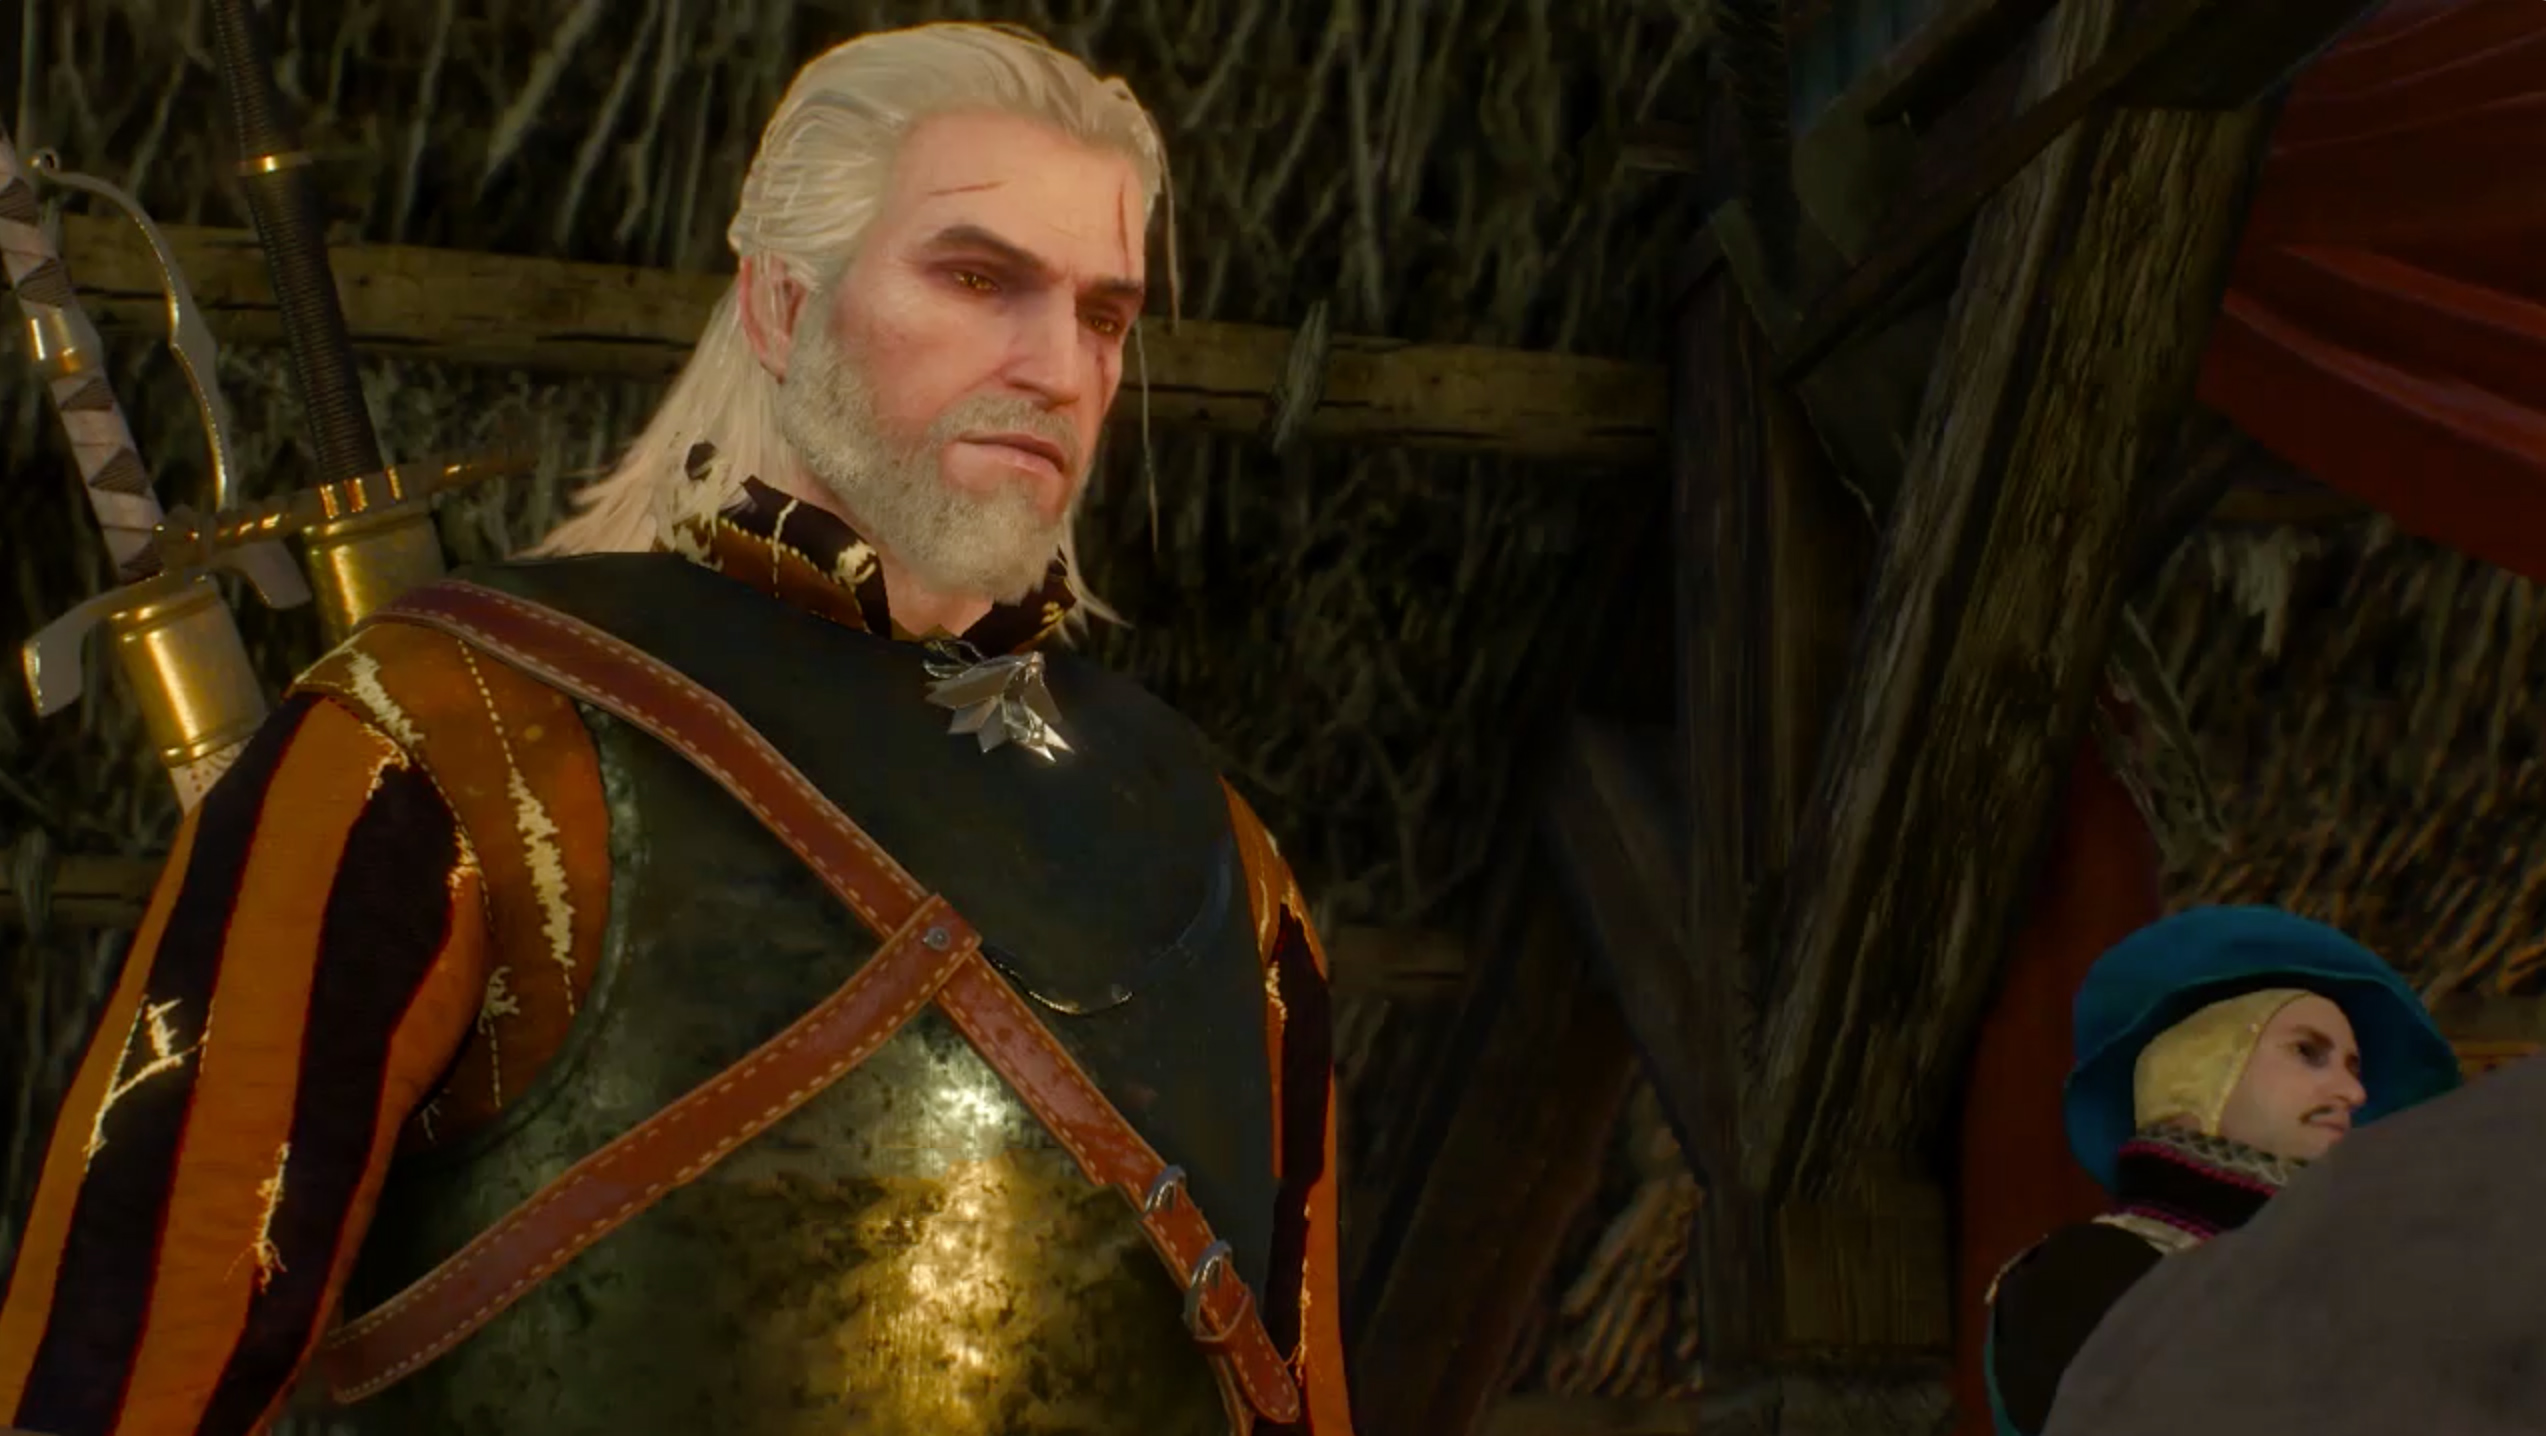 The Witcher 3 dev solved the game's money exploit in the